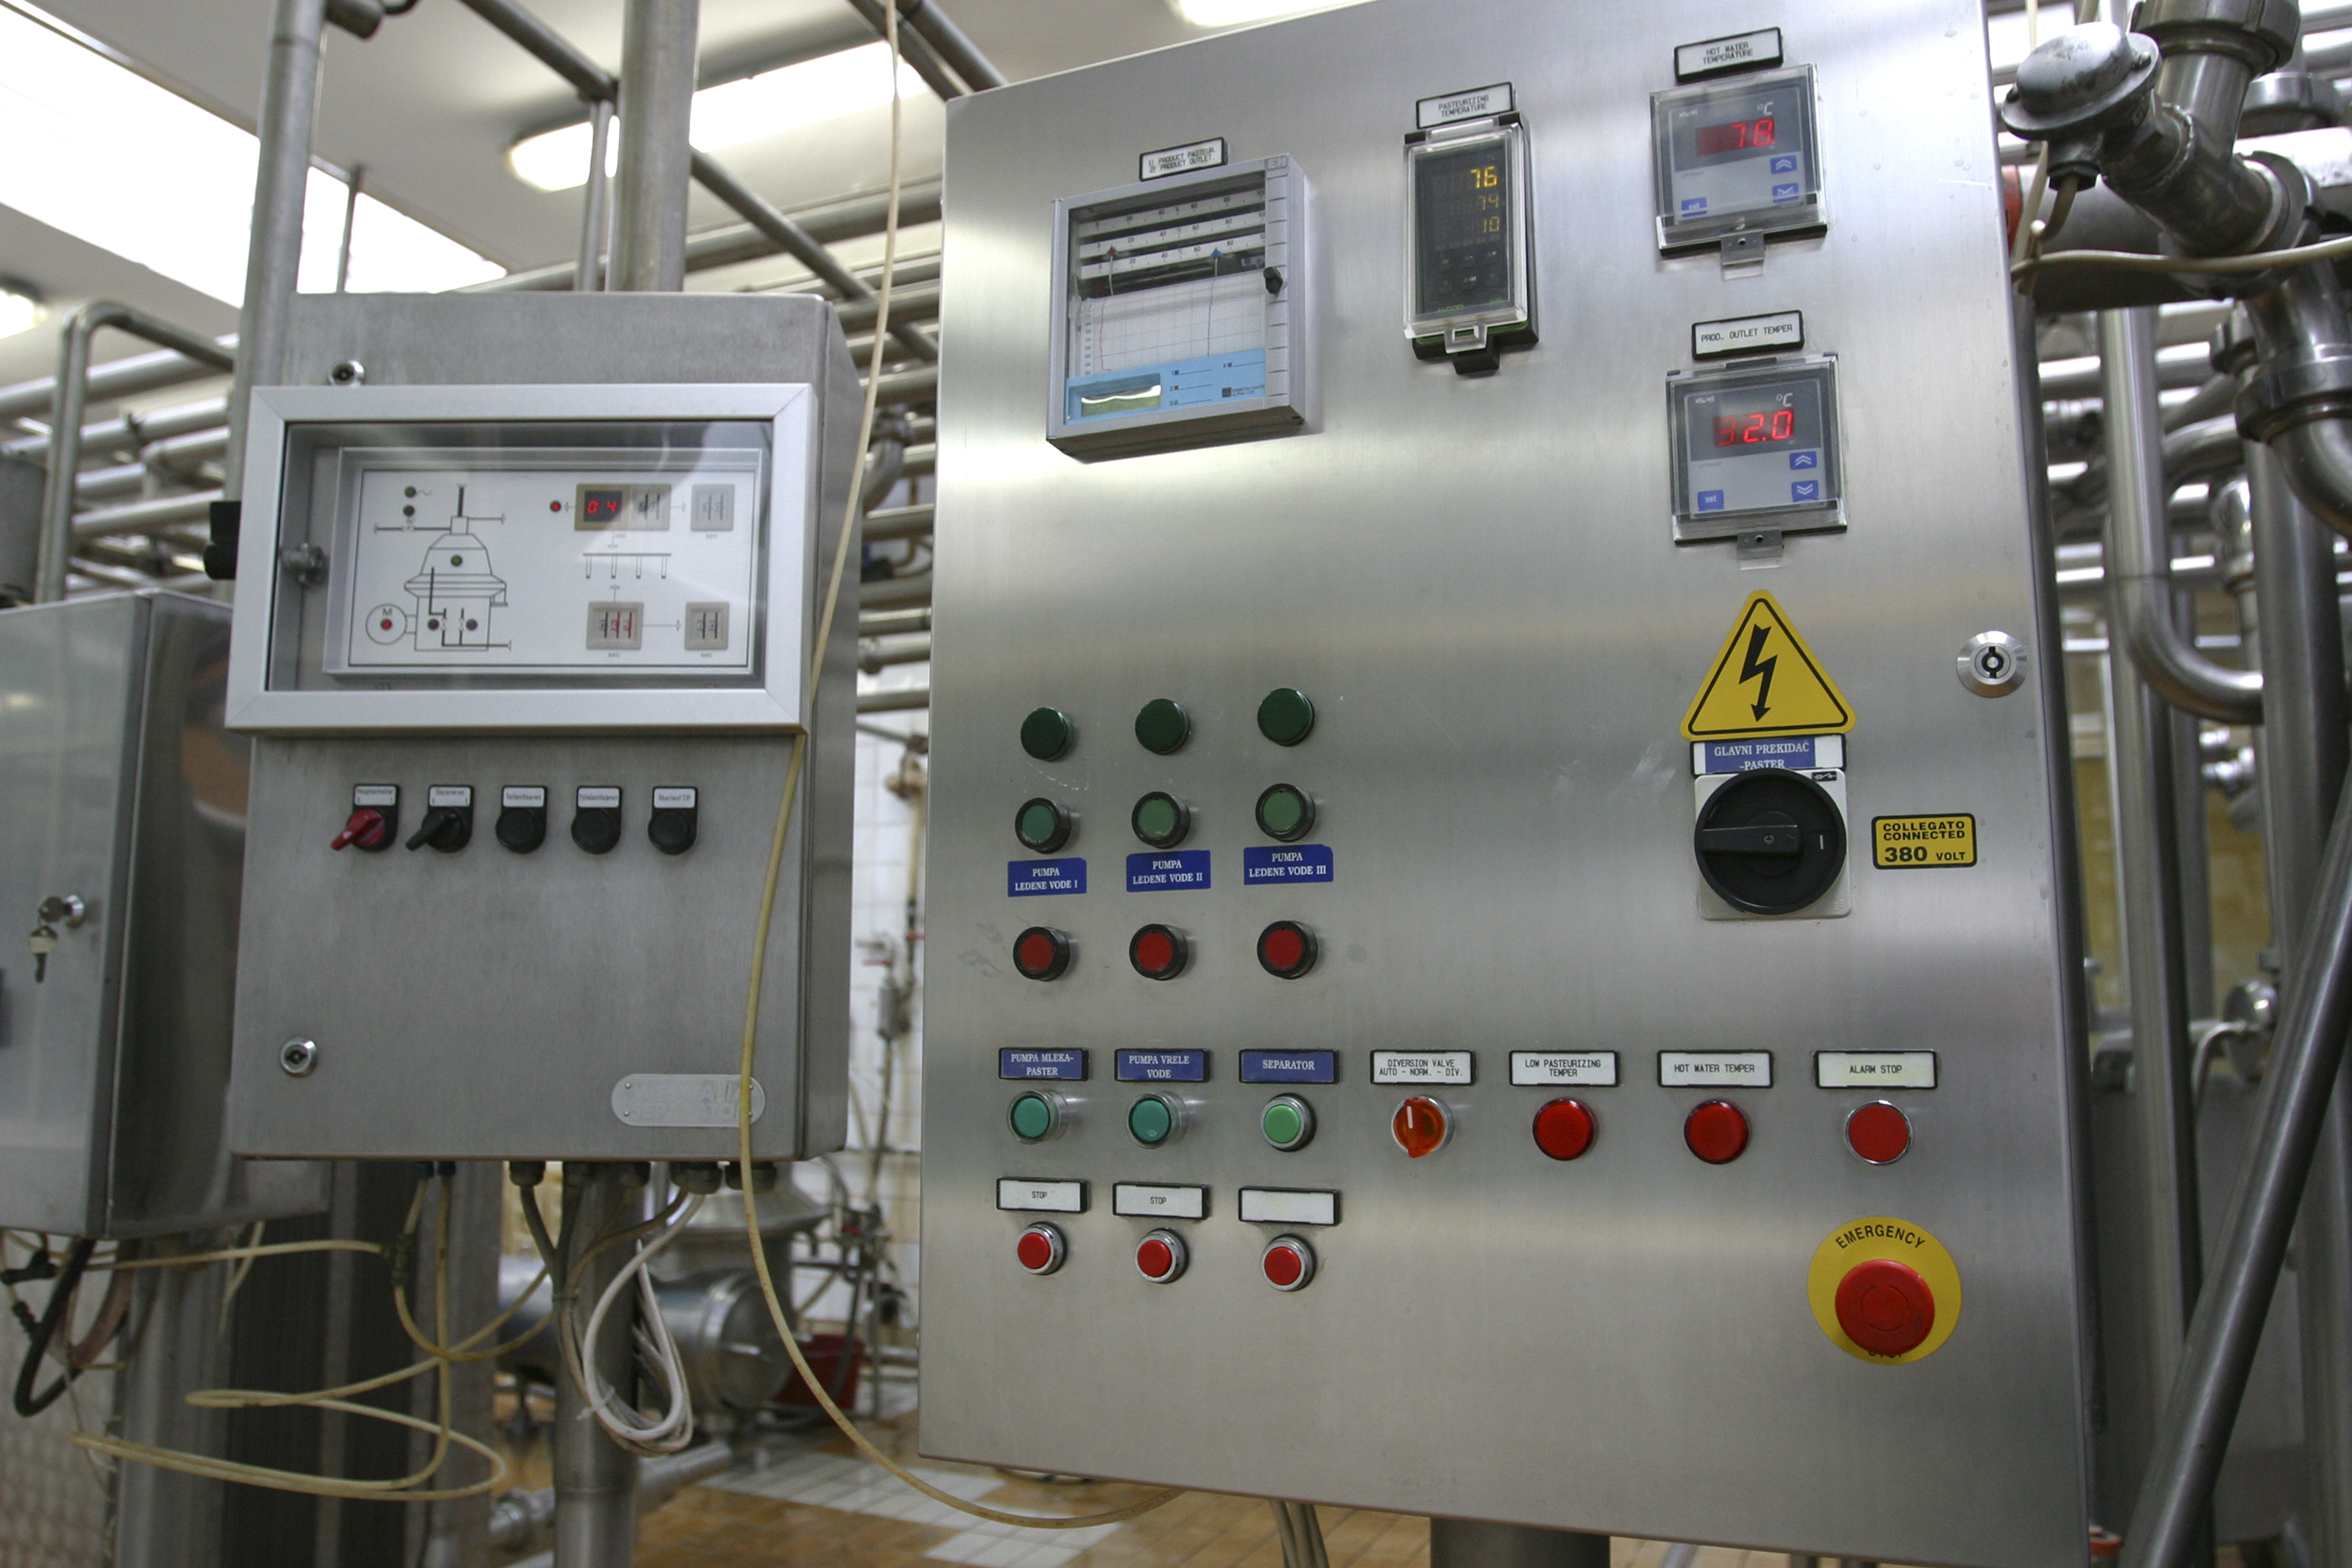 ATC Supervisor HMI module and MBrick controller can be used for process control applications